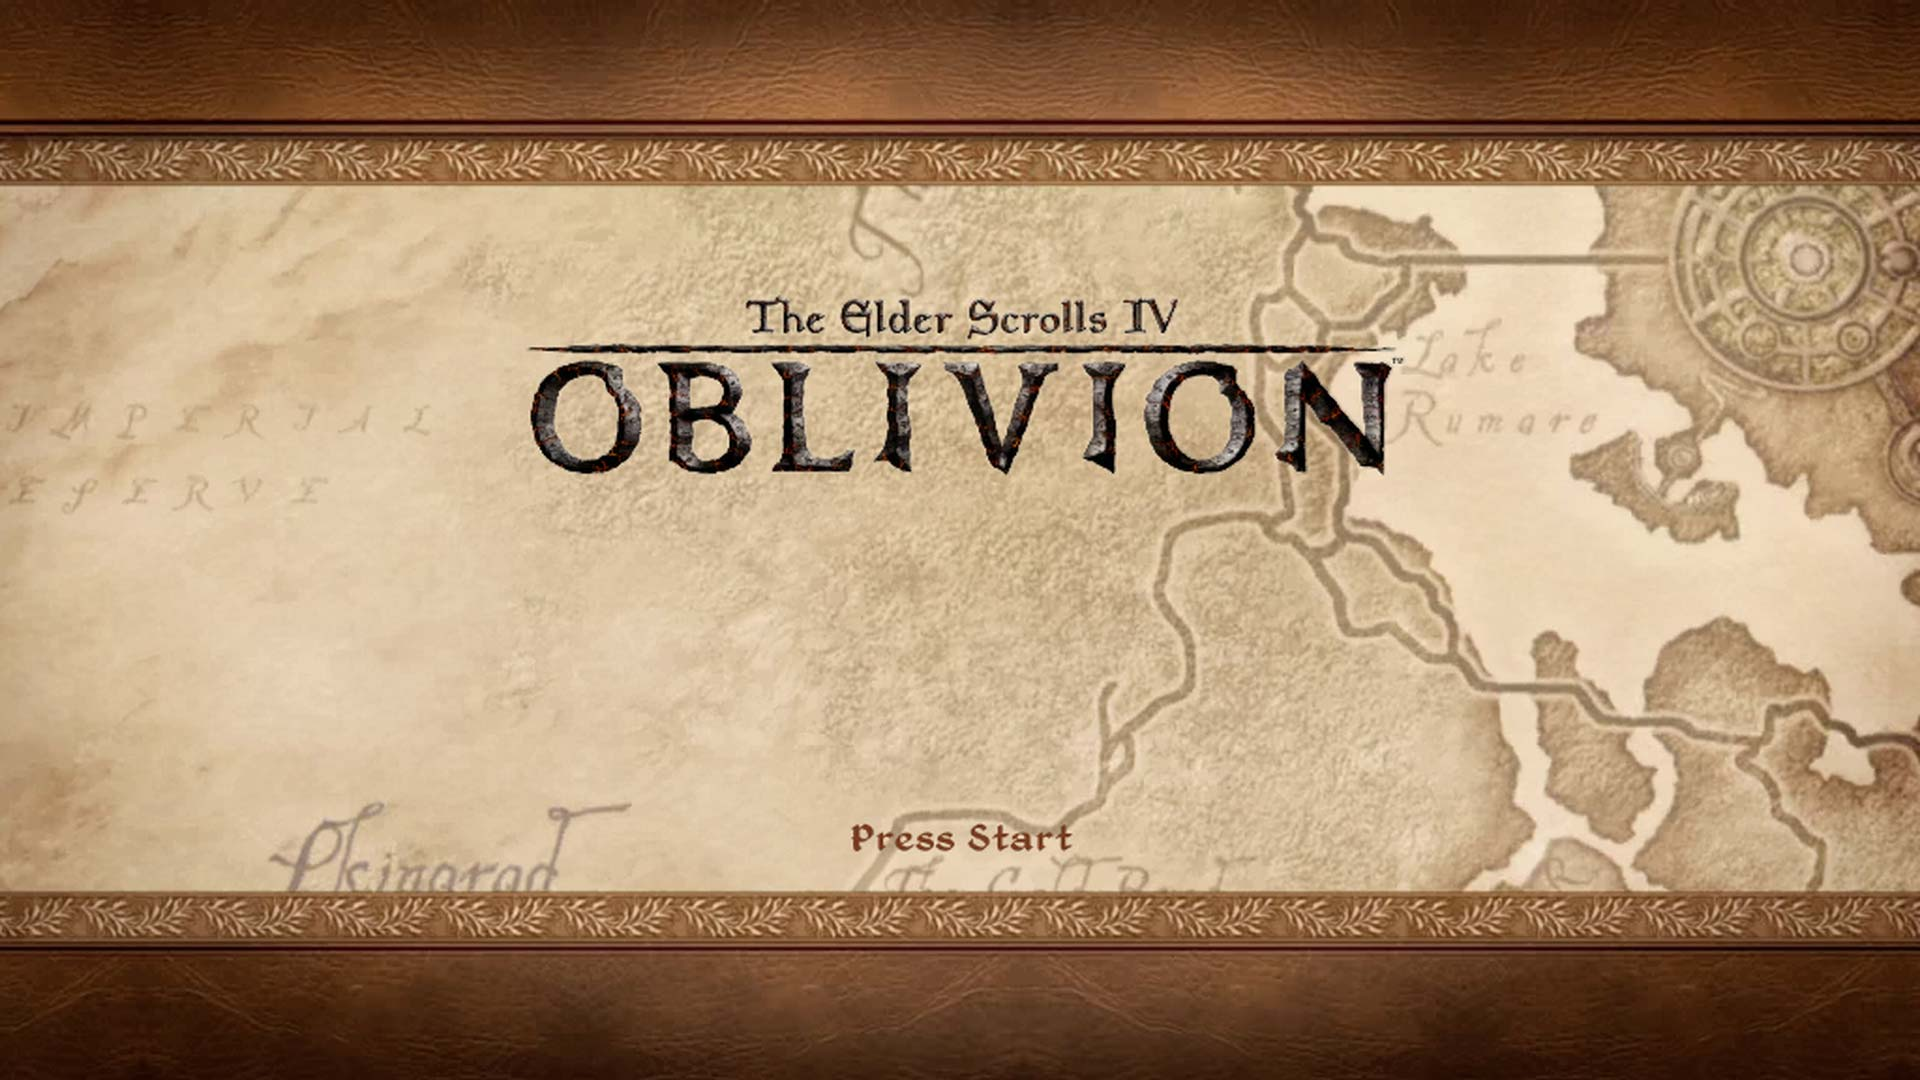 The title screen from Oblivion.